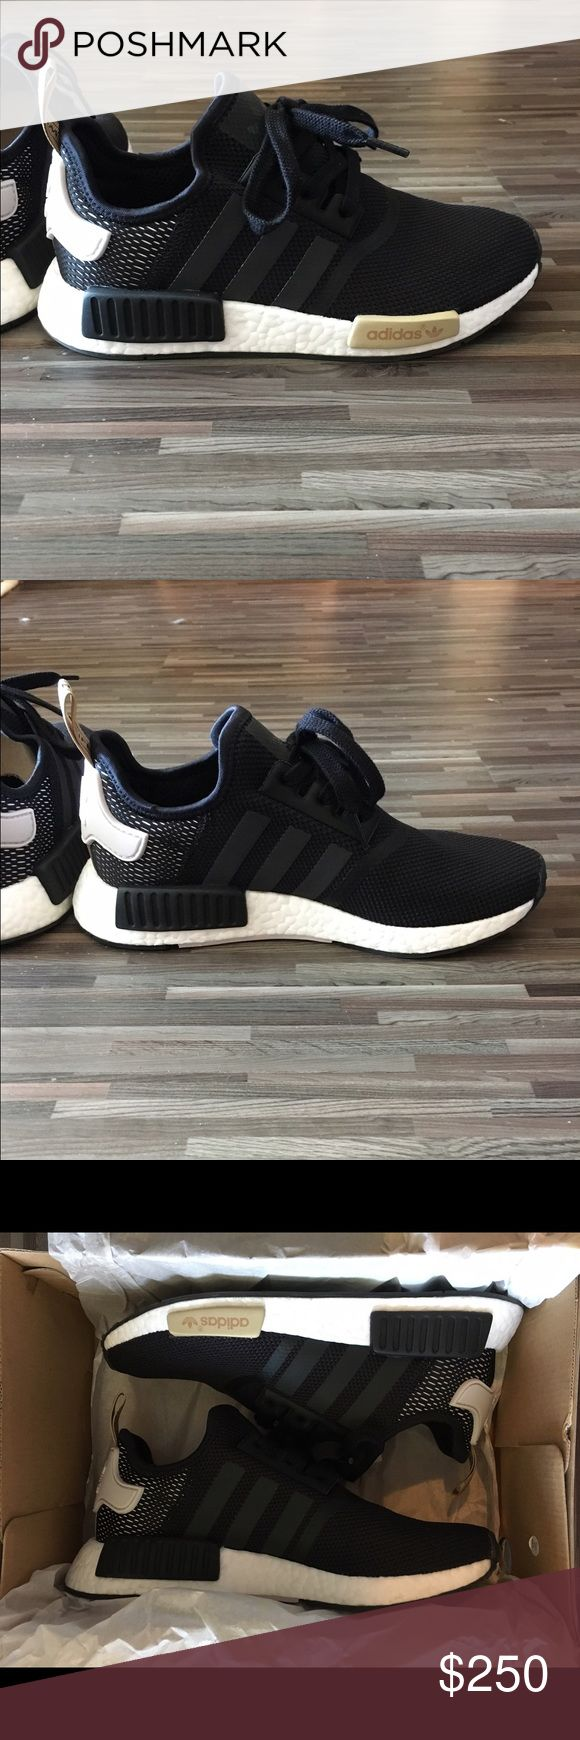 Women's Adidas NMDs Black/Icy Purple These sneakers are very rare! I hate to part with them but they've been sitting in my closet since I purchased them from an Adidas store in Surfside, Florida. NMDs run a half size small, so know your size! A 7.5 fits like an 8. Please, serious offers only! No trades. Happy shopping! adidas Shoes Athletic Shoes